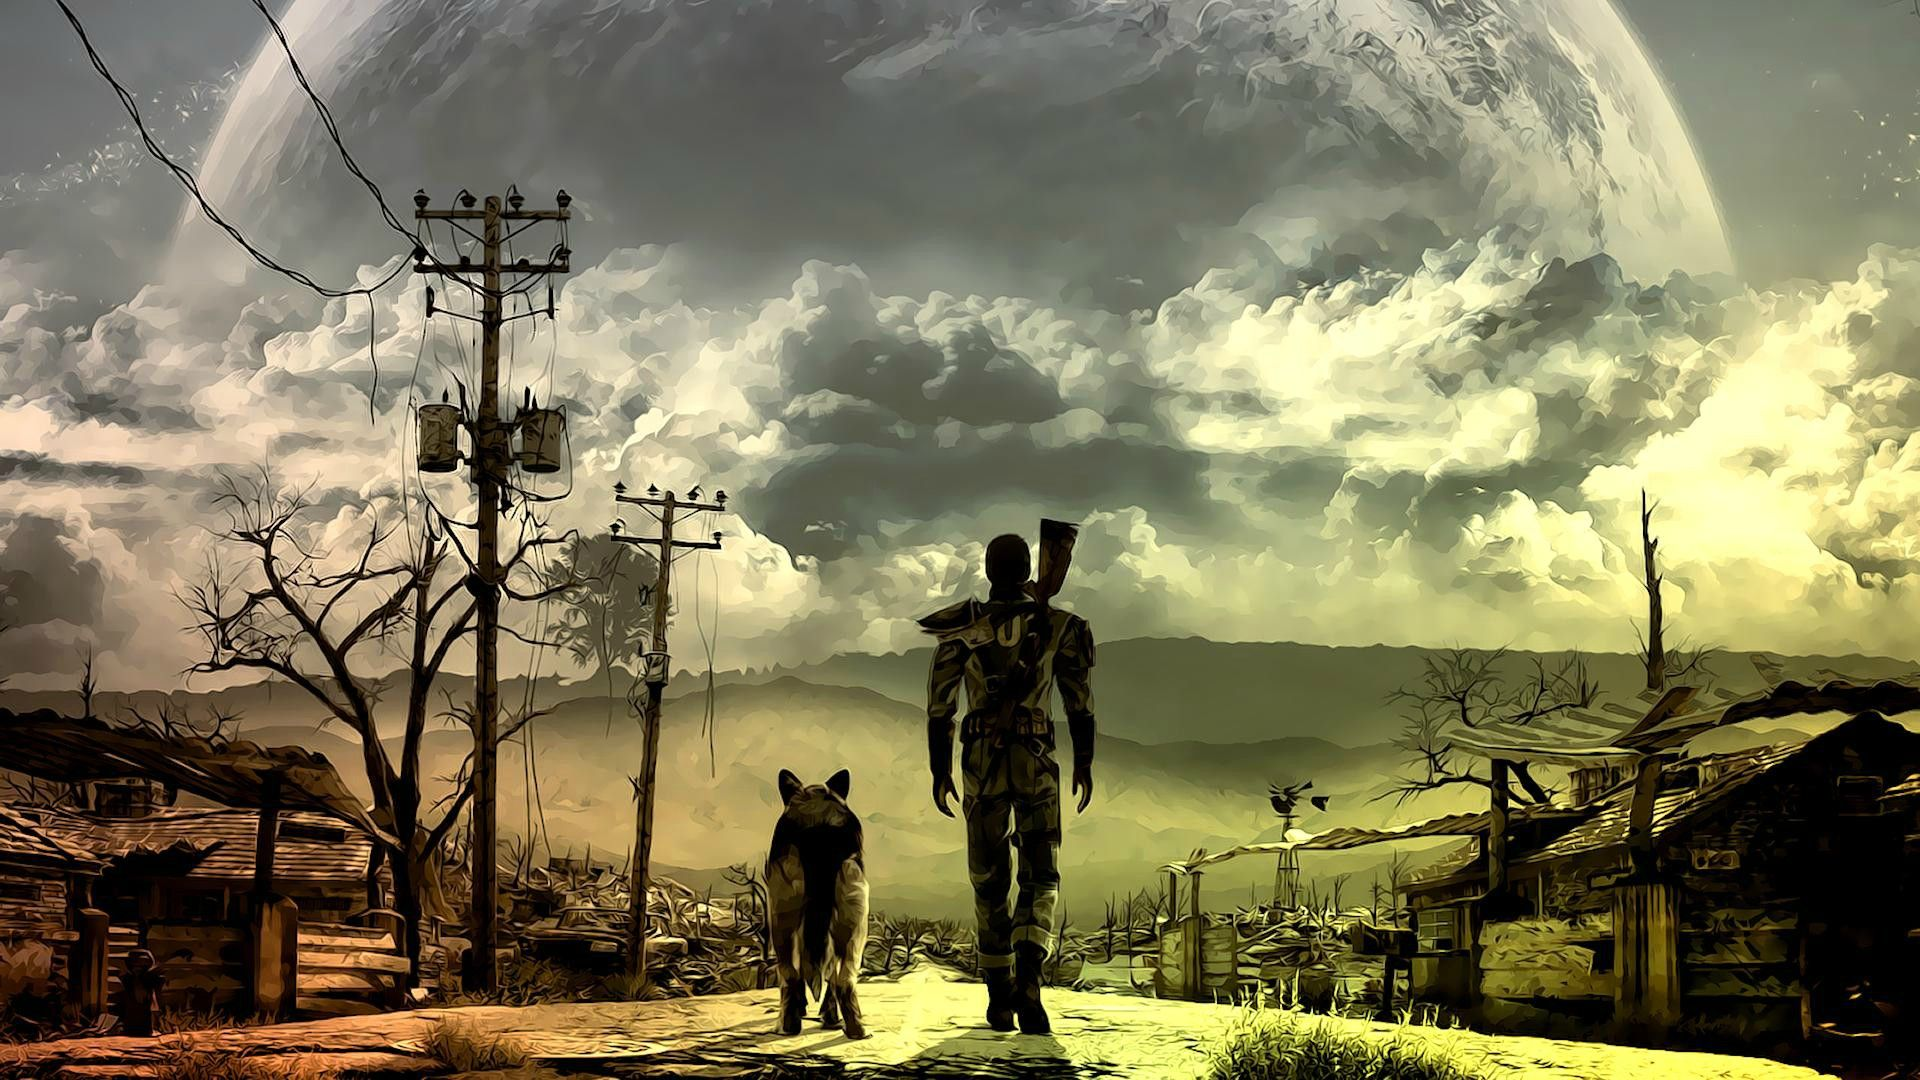 575 Wallpapers All 1080p No Watermarks In 2020 Fallout